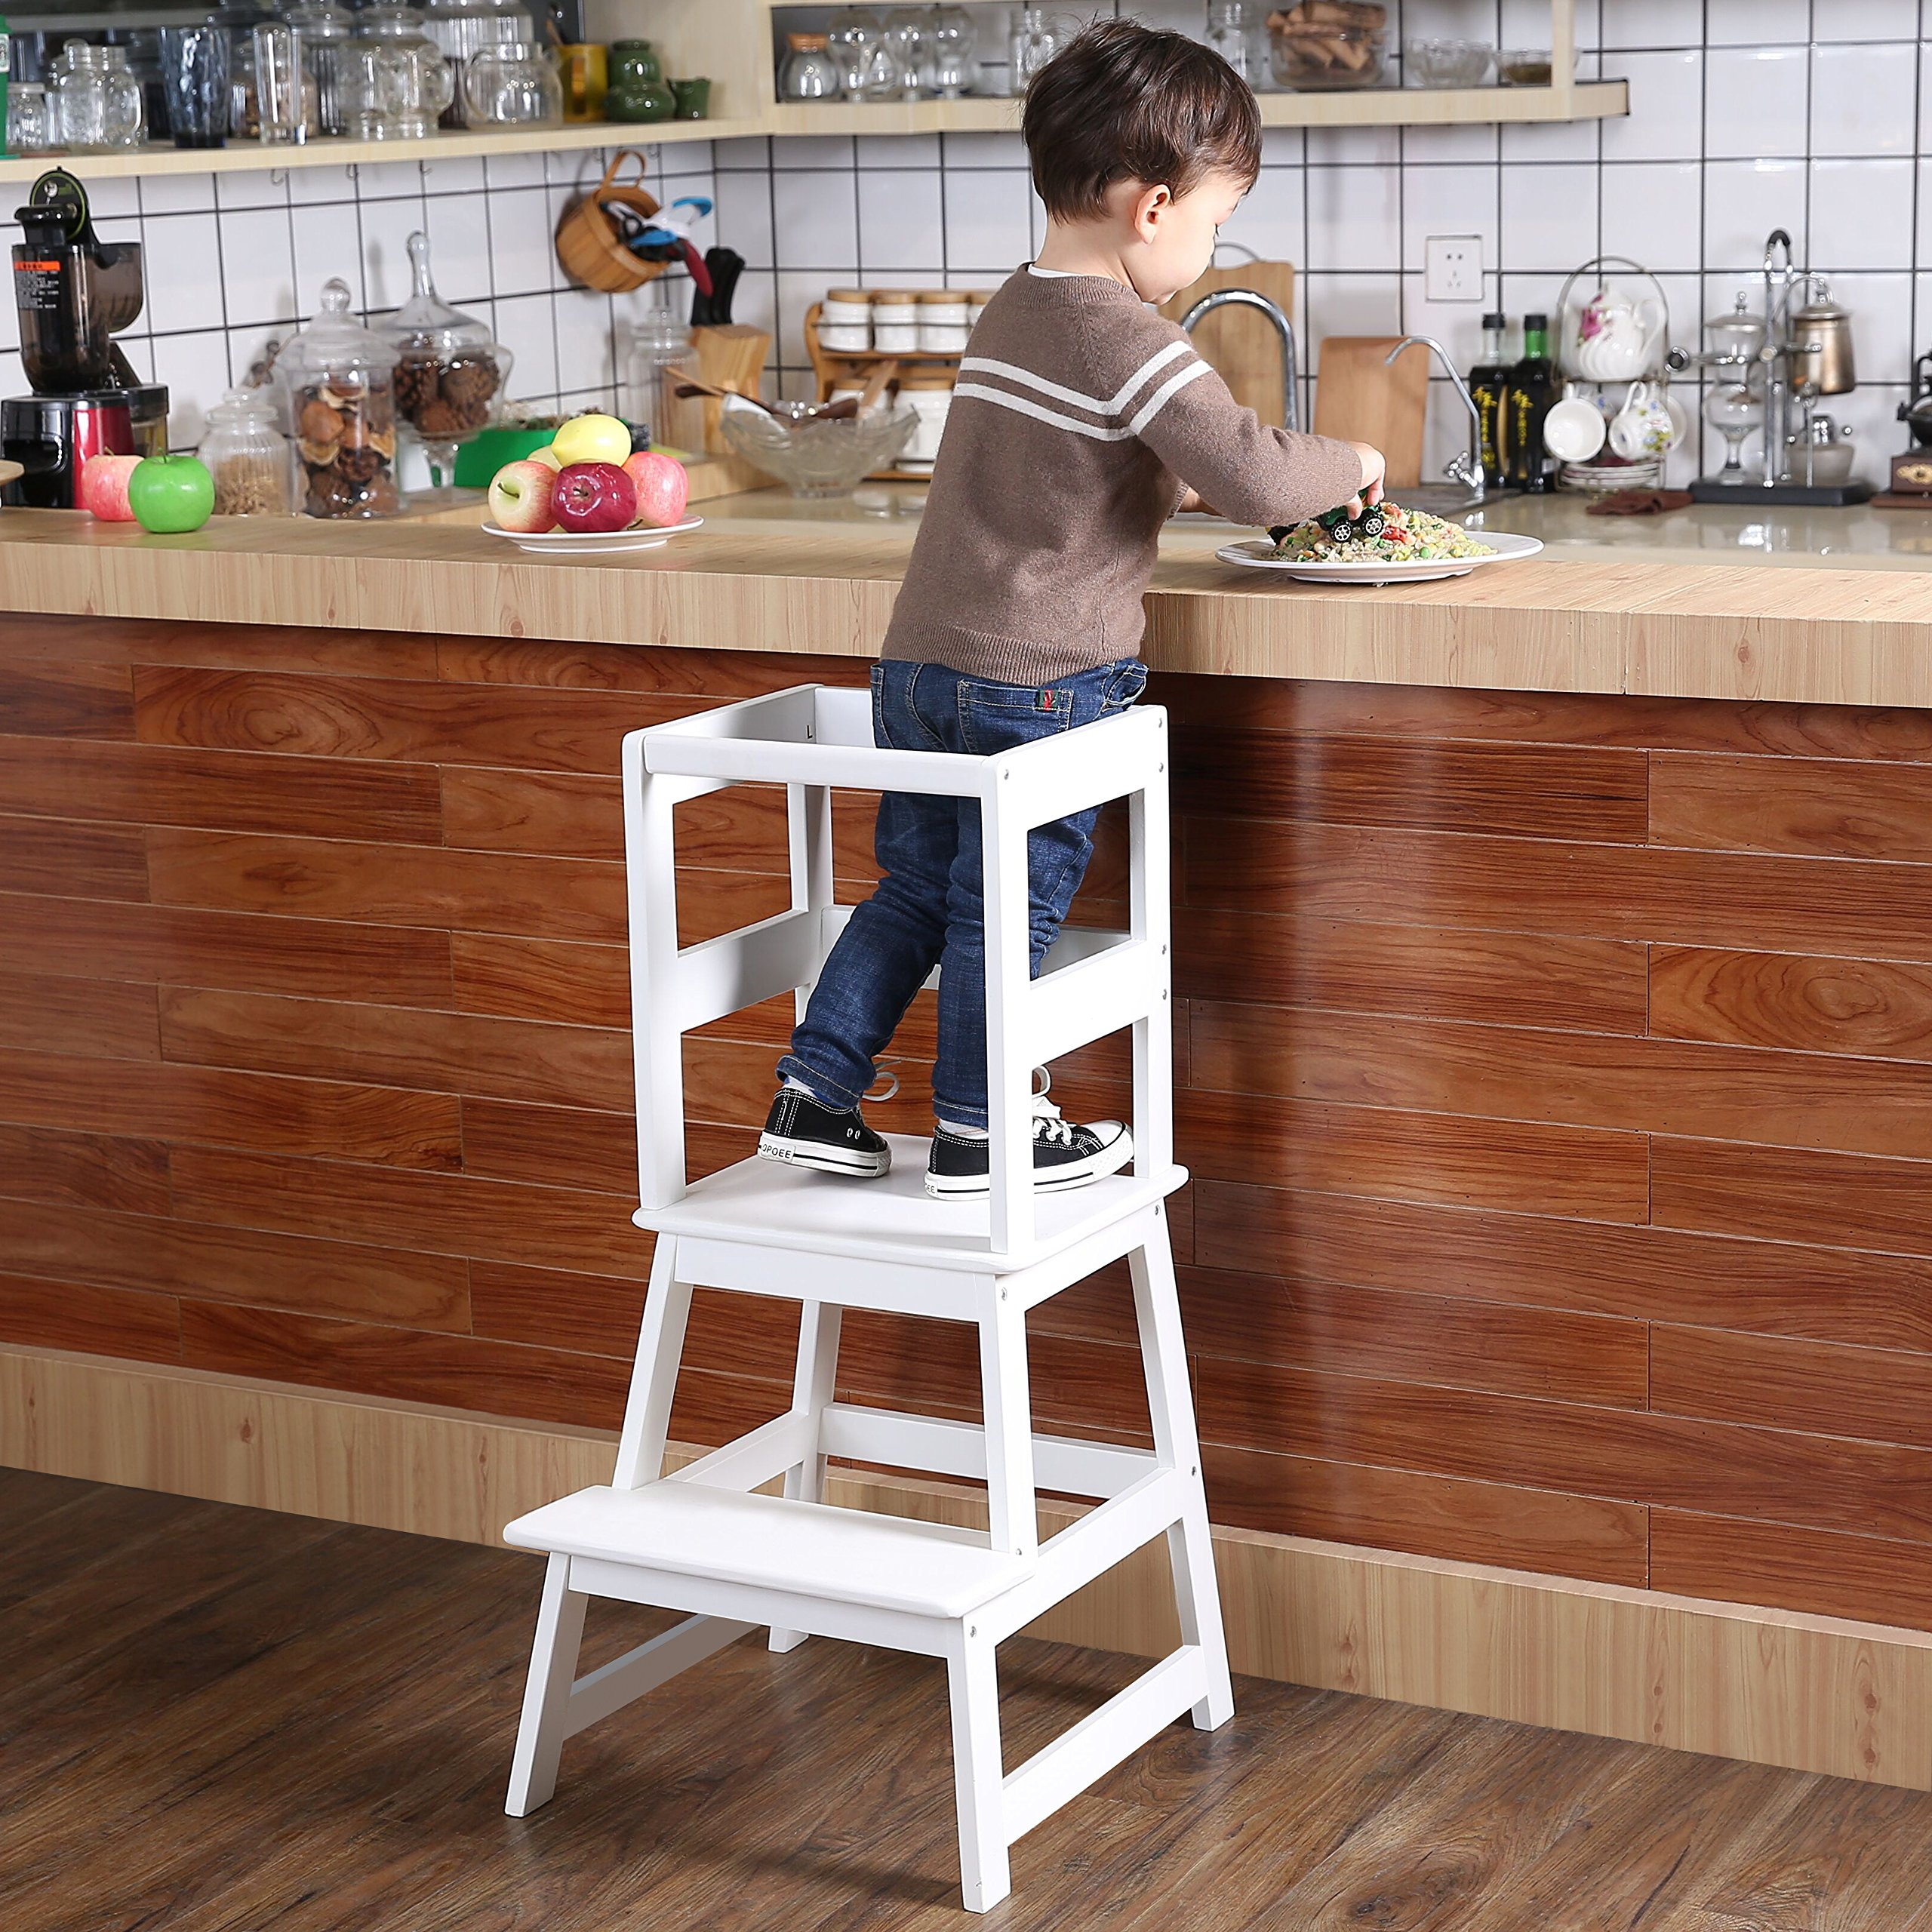 sdadi kids step stool kitchen learning stool with safety rail cpsc certified for toddlers 18. Black Bedroom Furniture Sets. Home Design Ideas